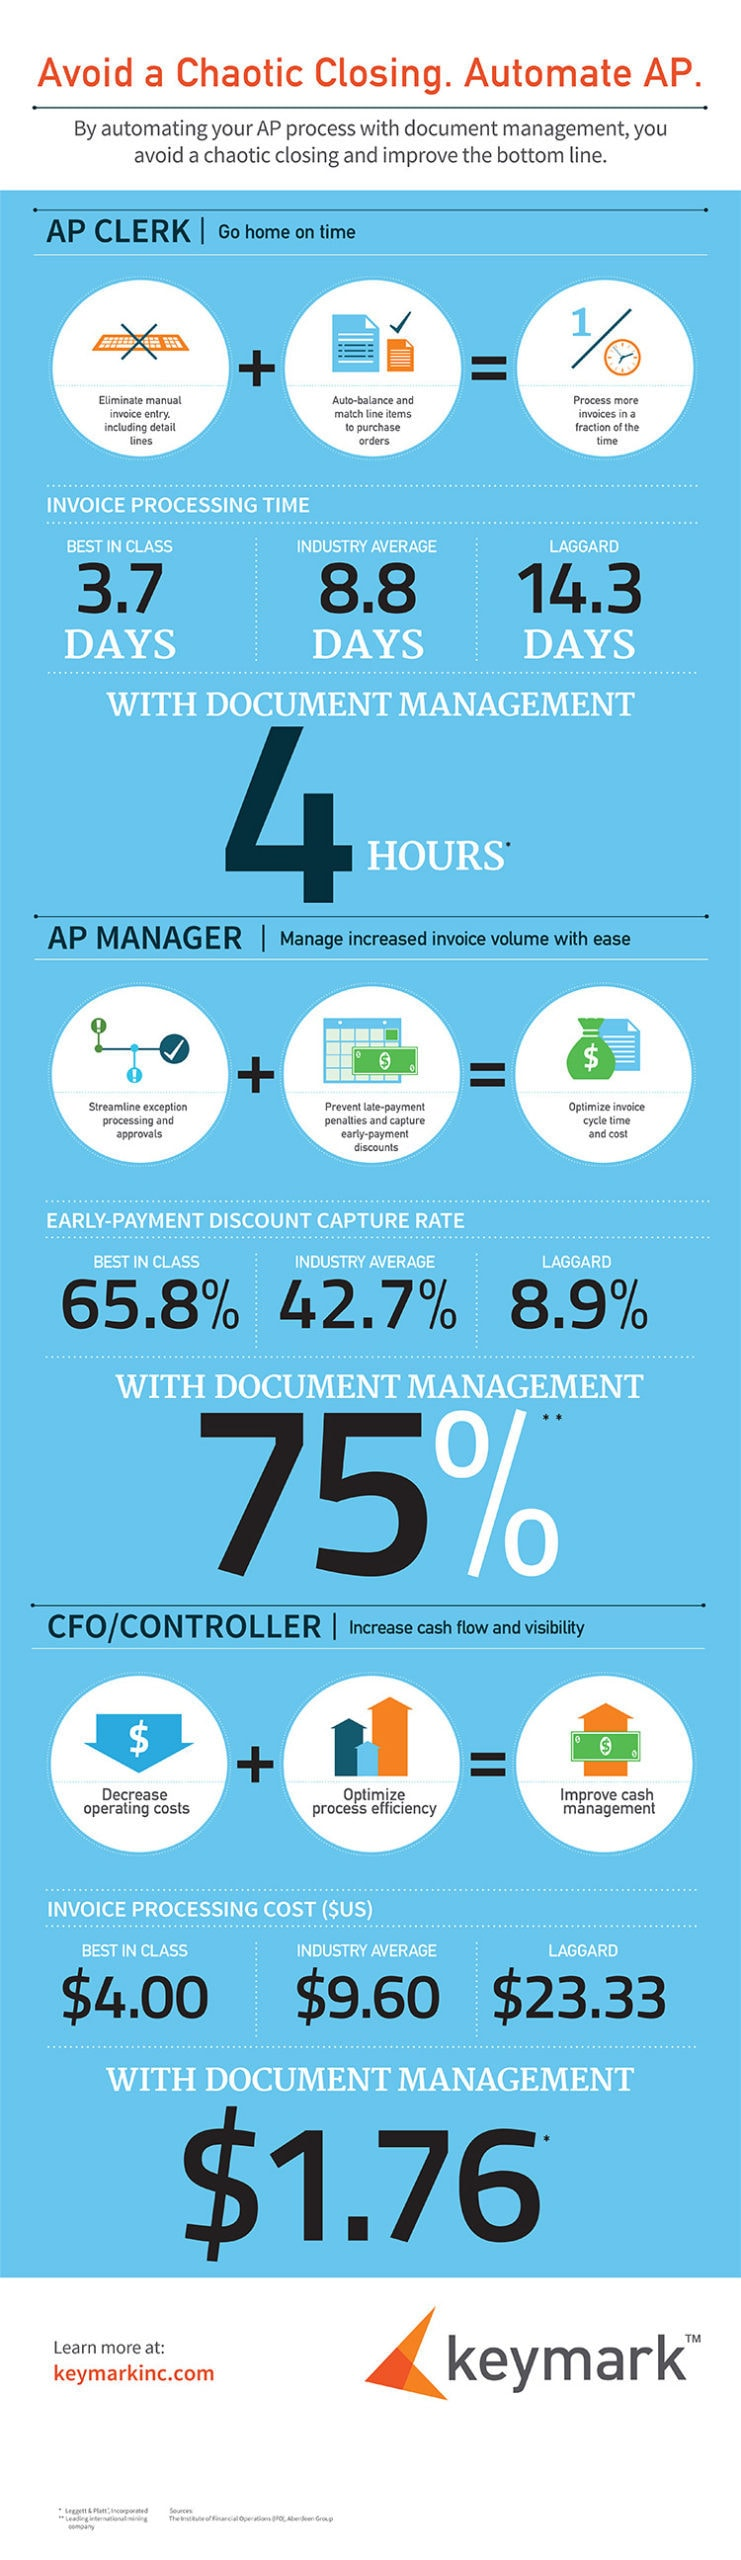 OnBase-AP-Infographic